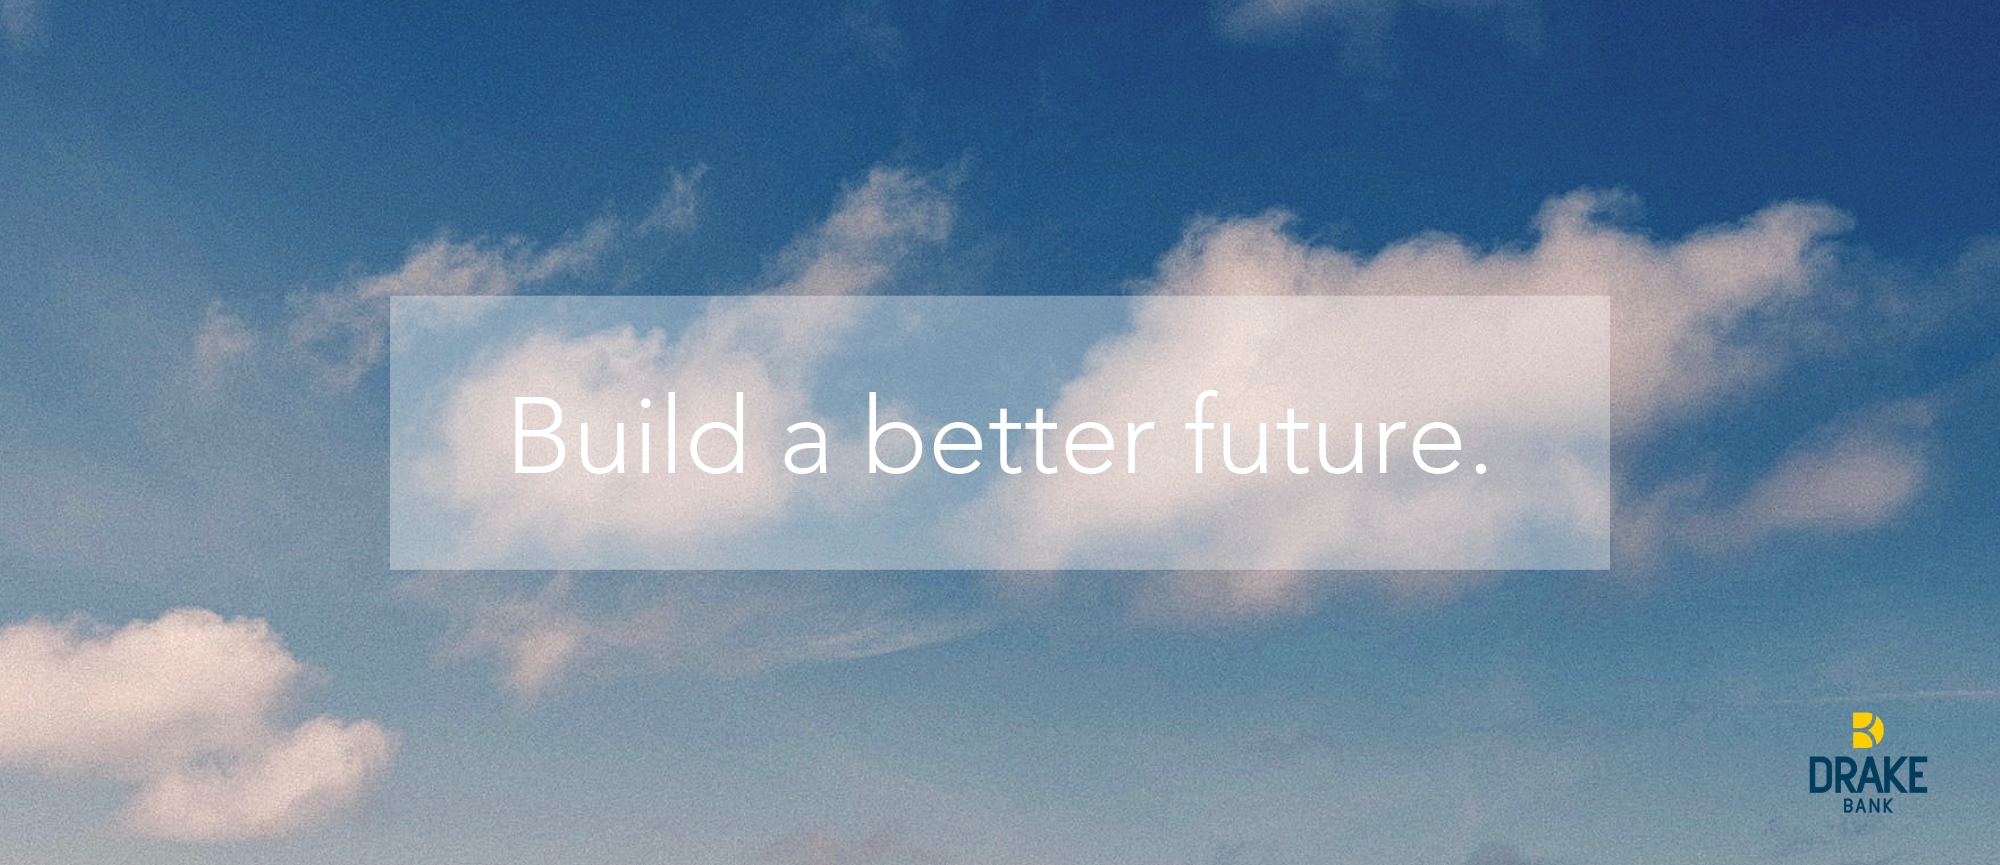 Build a better future